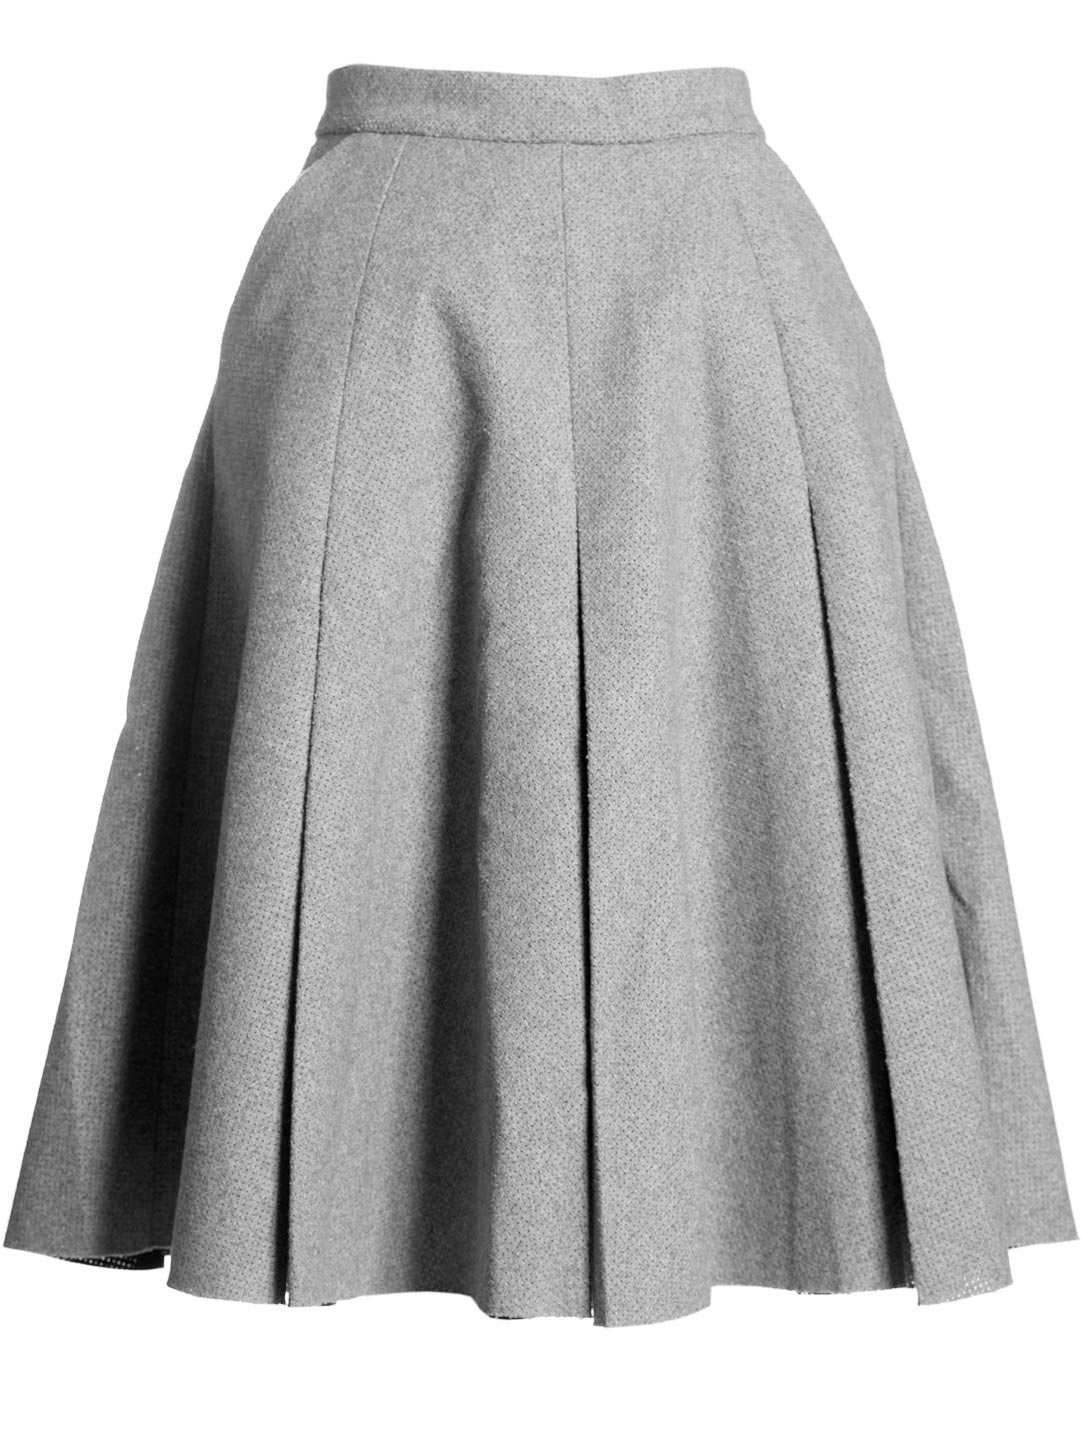 J.w.anderson Jw Anderson Womens Box Pleat Skirt in Gray | Lyst